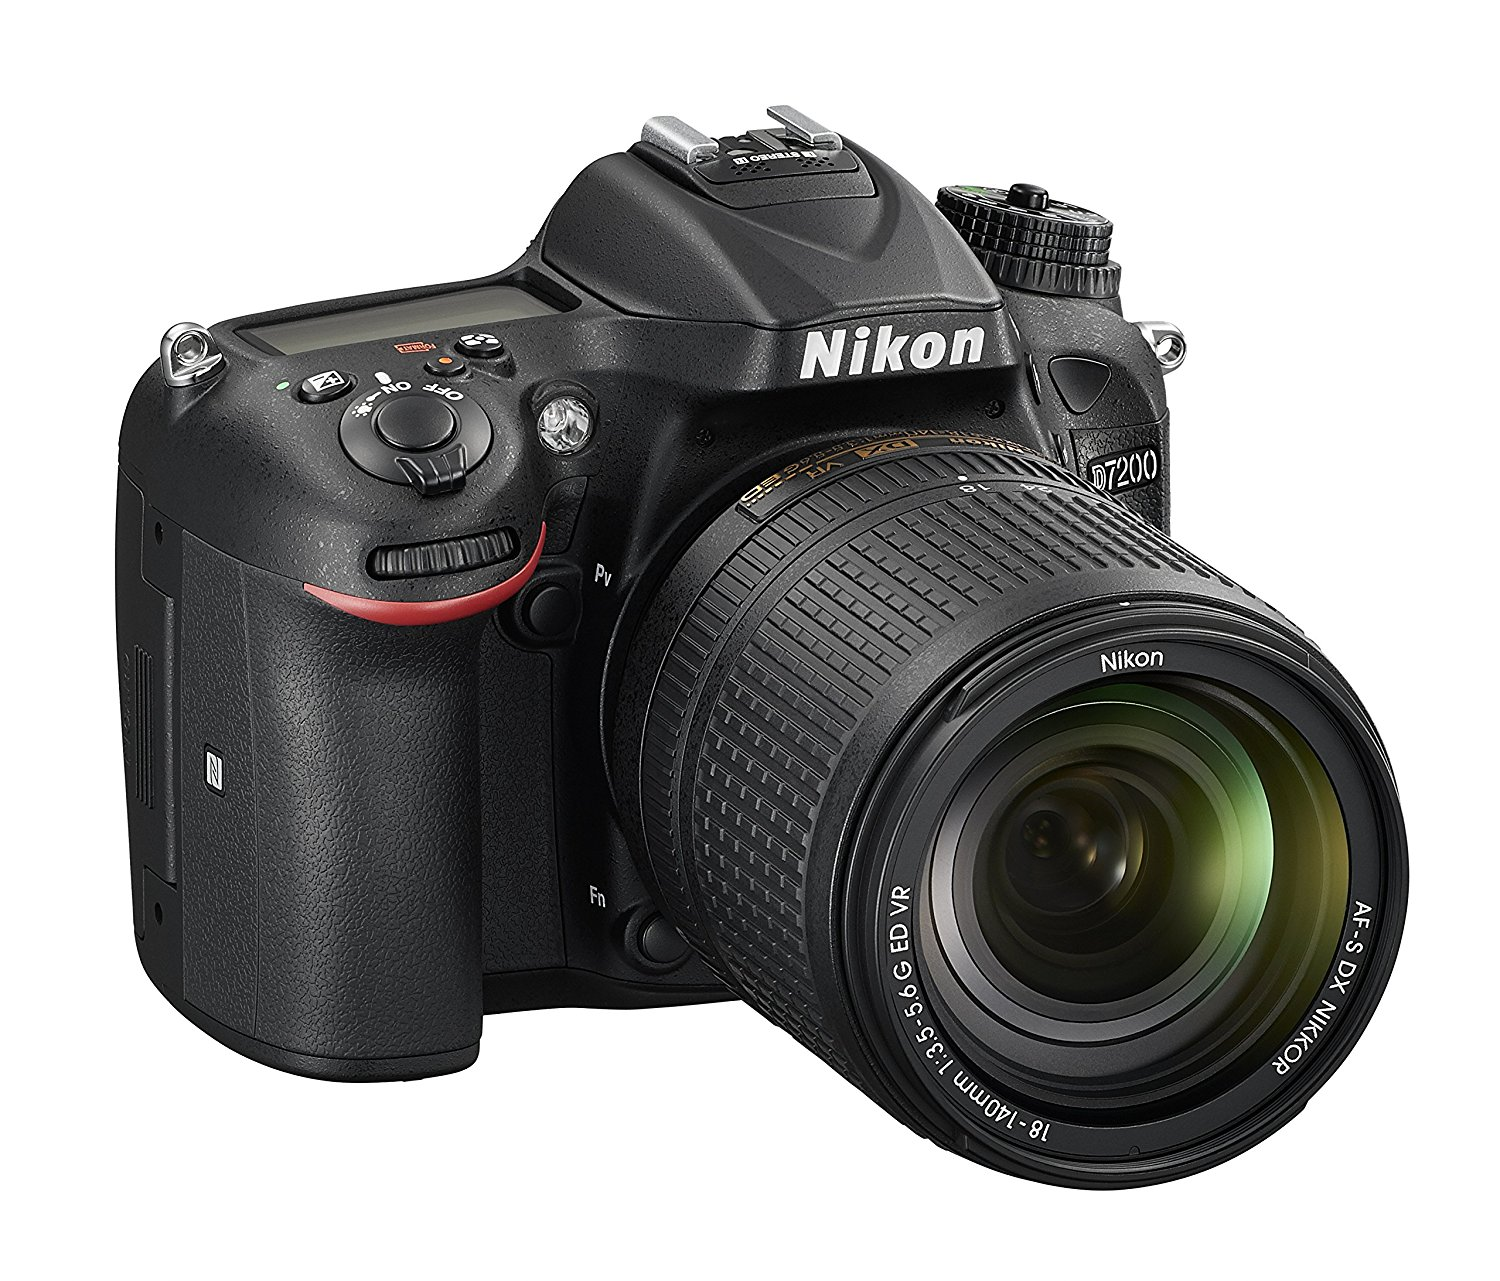 Is the Nikon D7500 Really That Much Better than the Nikon D7200?